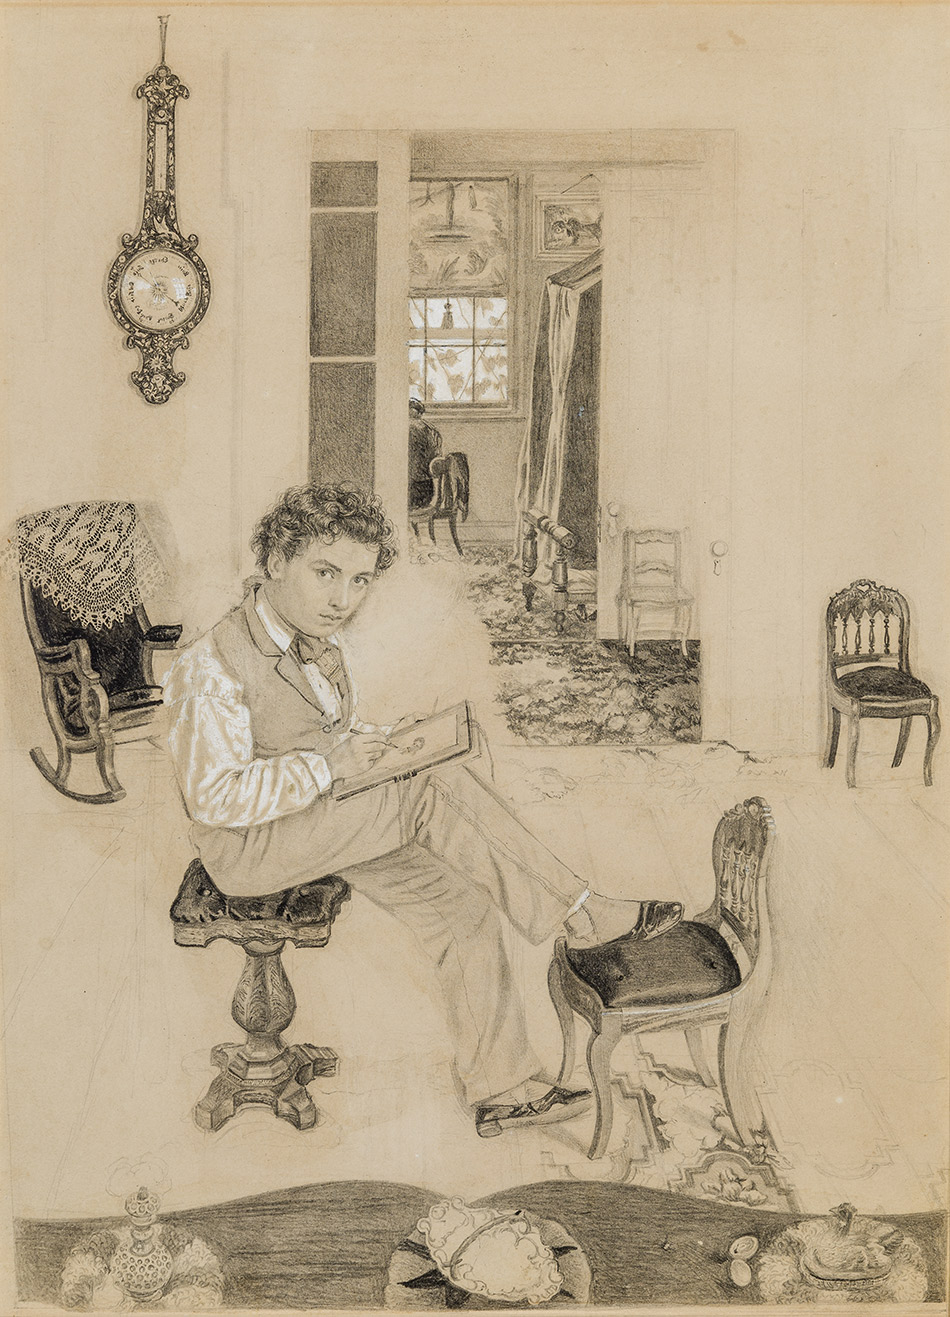 Thomas-C.-Farrer_Self-Portrait_Sketching_c,1859_4104-048_Lent-by-Mr.-and-Mrs.-Stuart-P.-Feld_950w